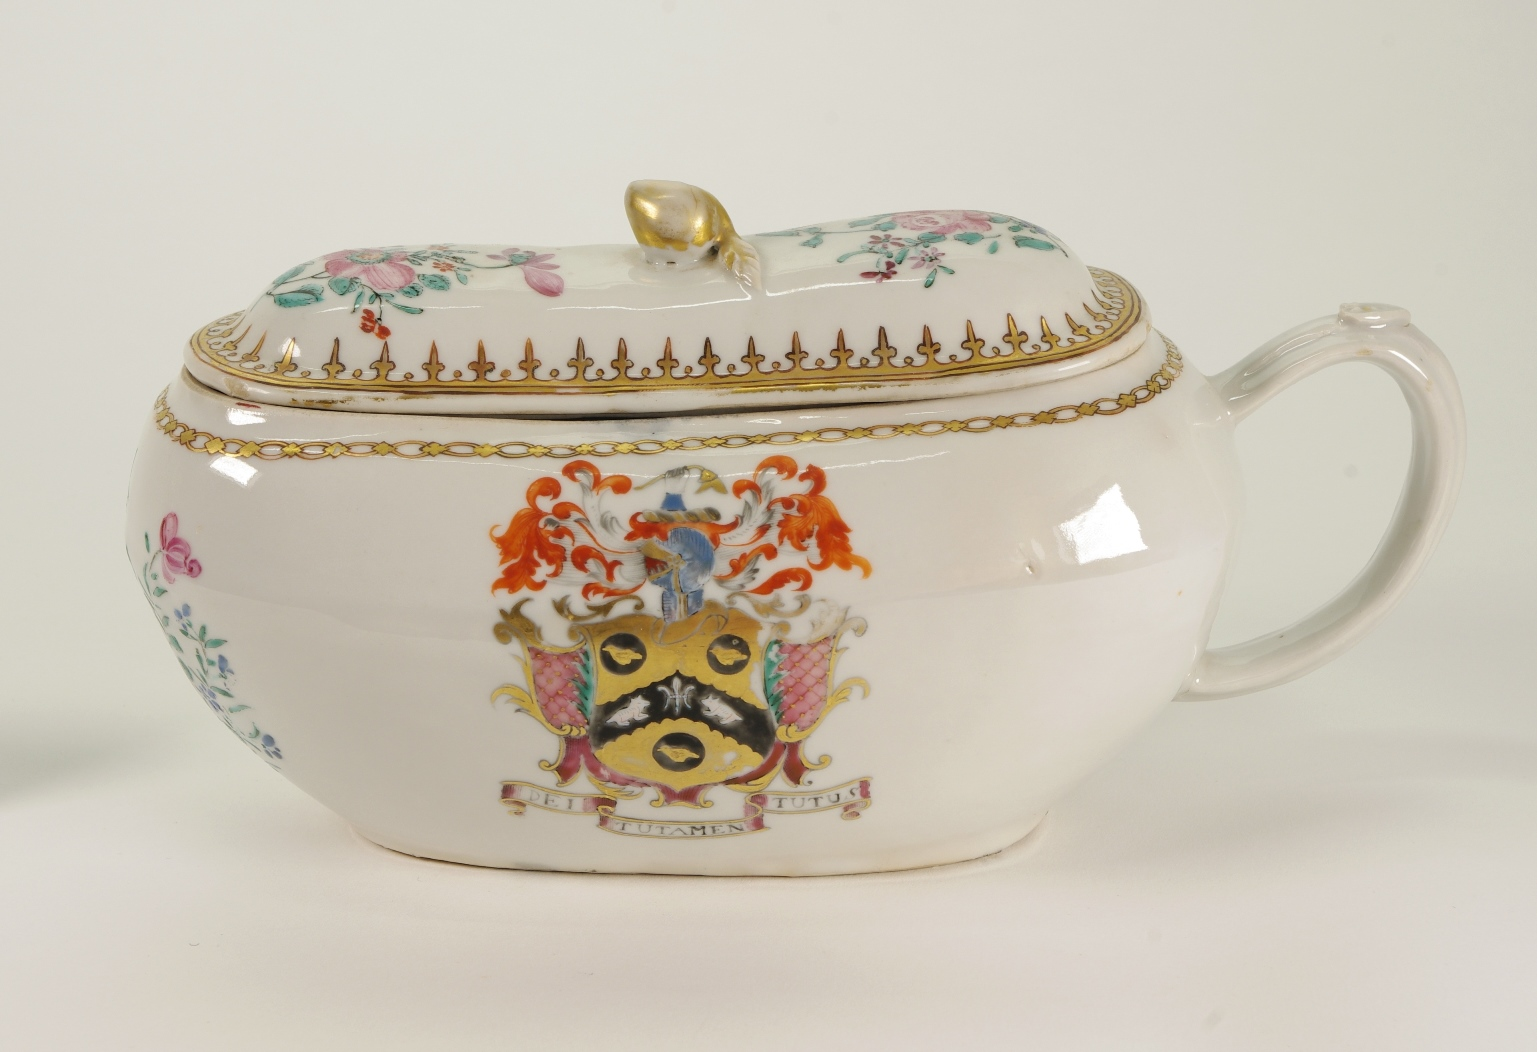 View 8: Chinese Export Armorial Bourdaloue, c. 1750